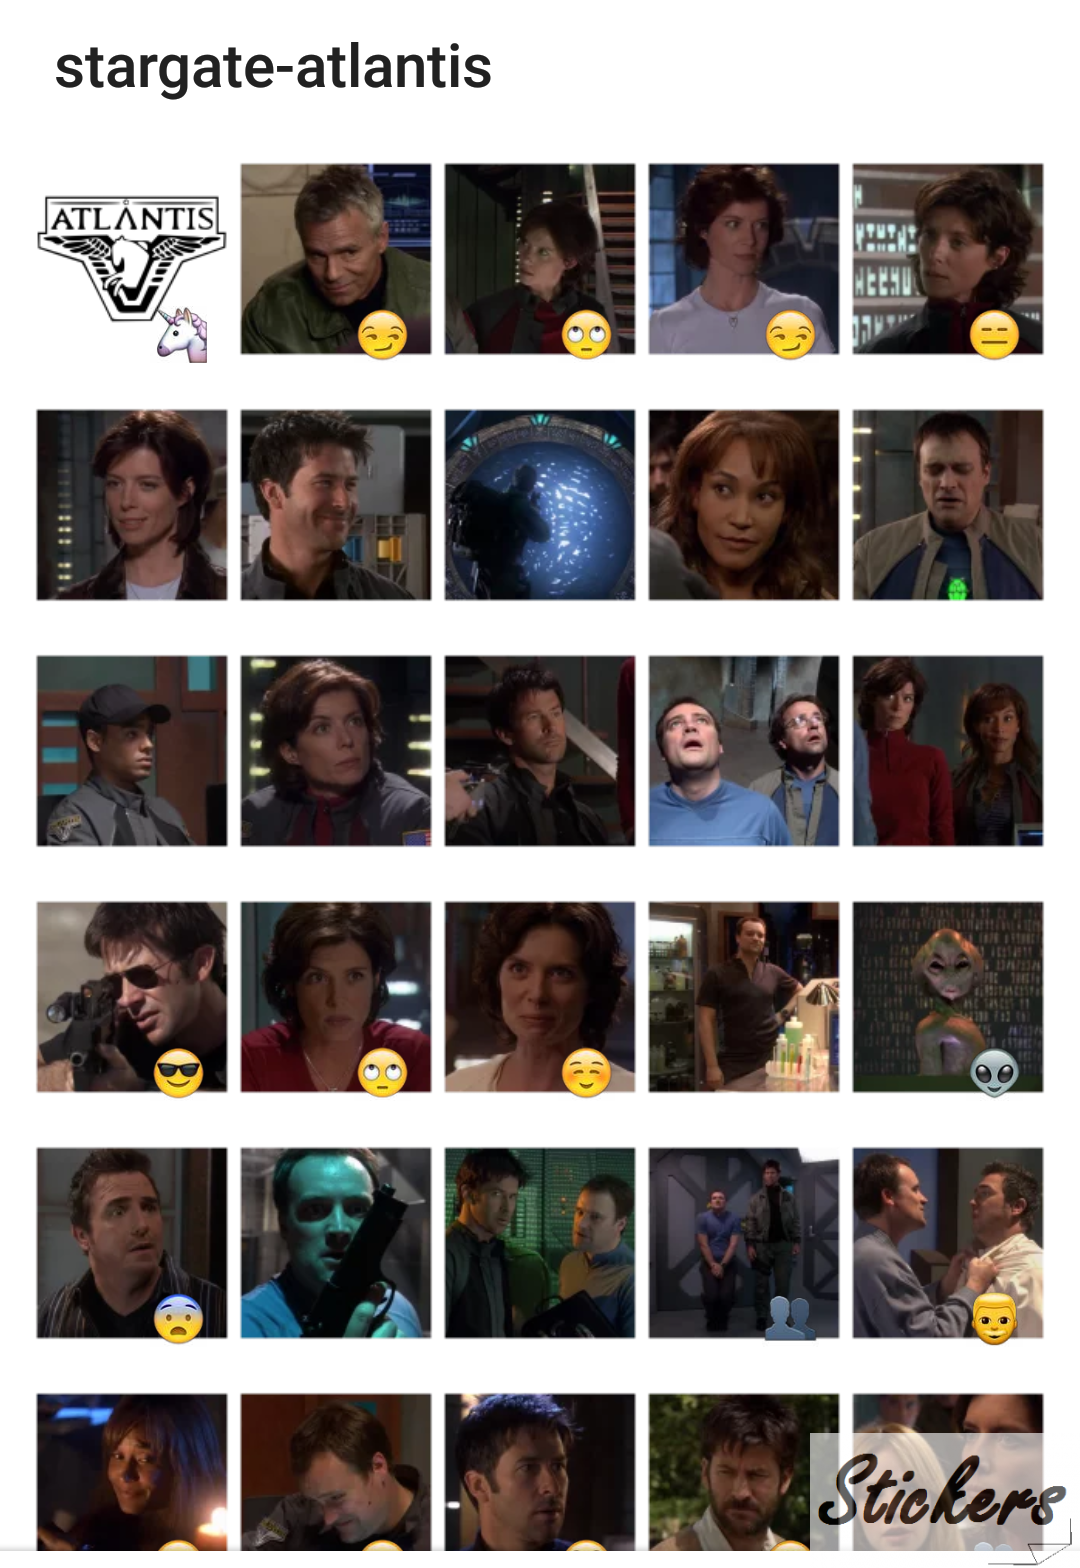 Stargate-atlantis Telegram sticker set